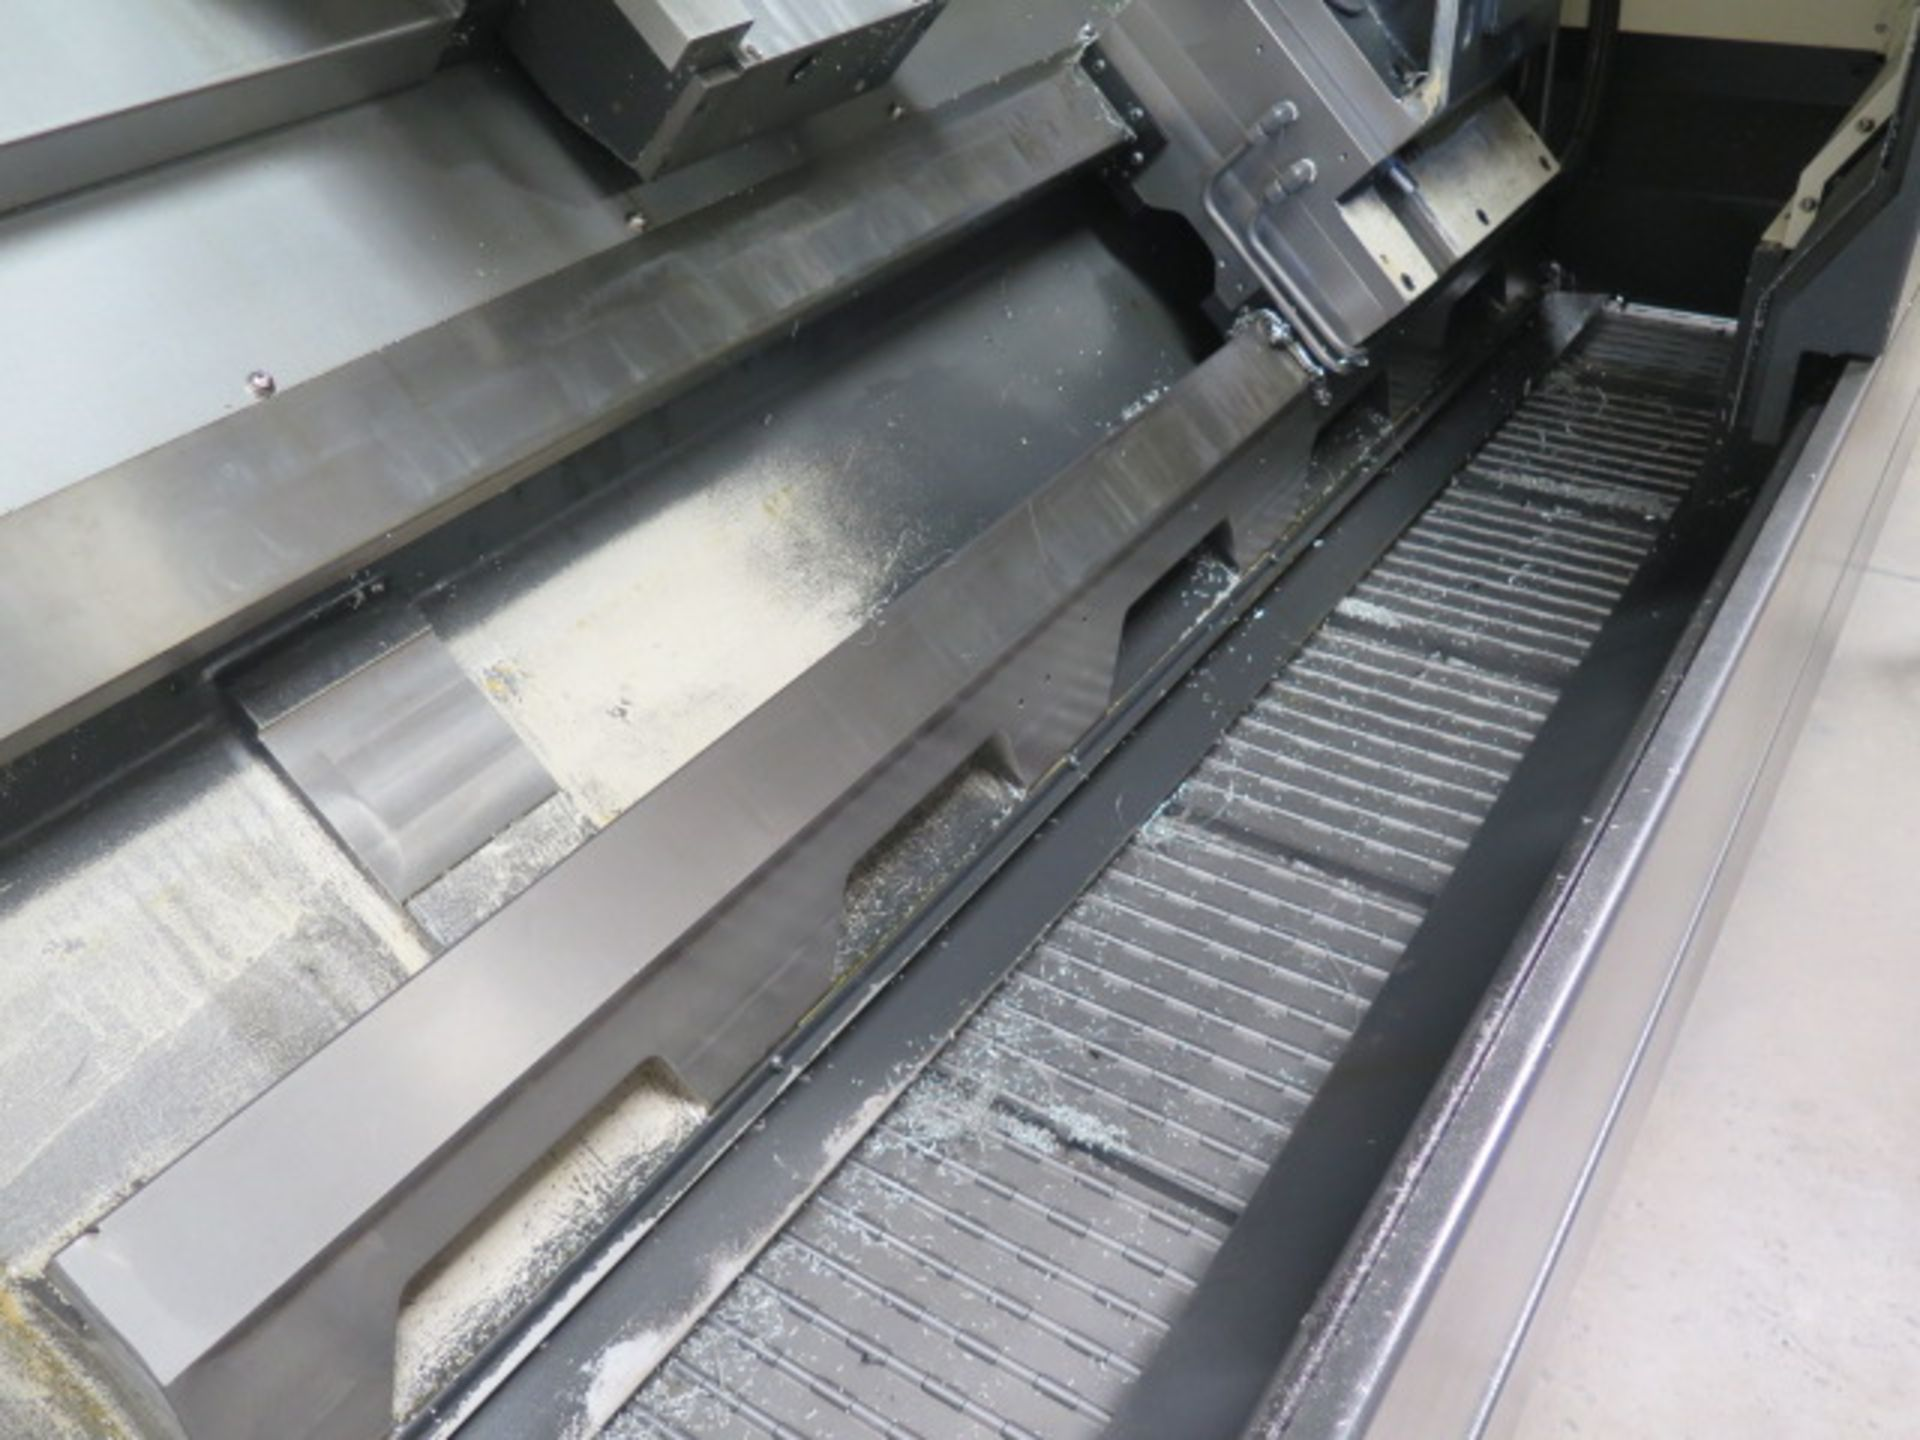 2016 Hyundai WIA L300LA CNC Turning Center s/n G3726-0083 w/ Fanuc i-Series Controls, SOLD AS IS - Image 12 of 20